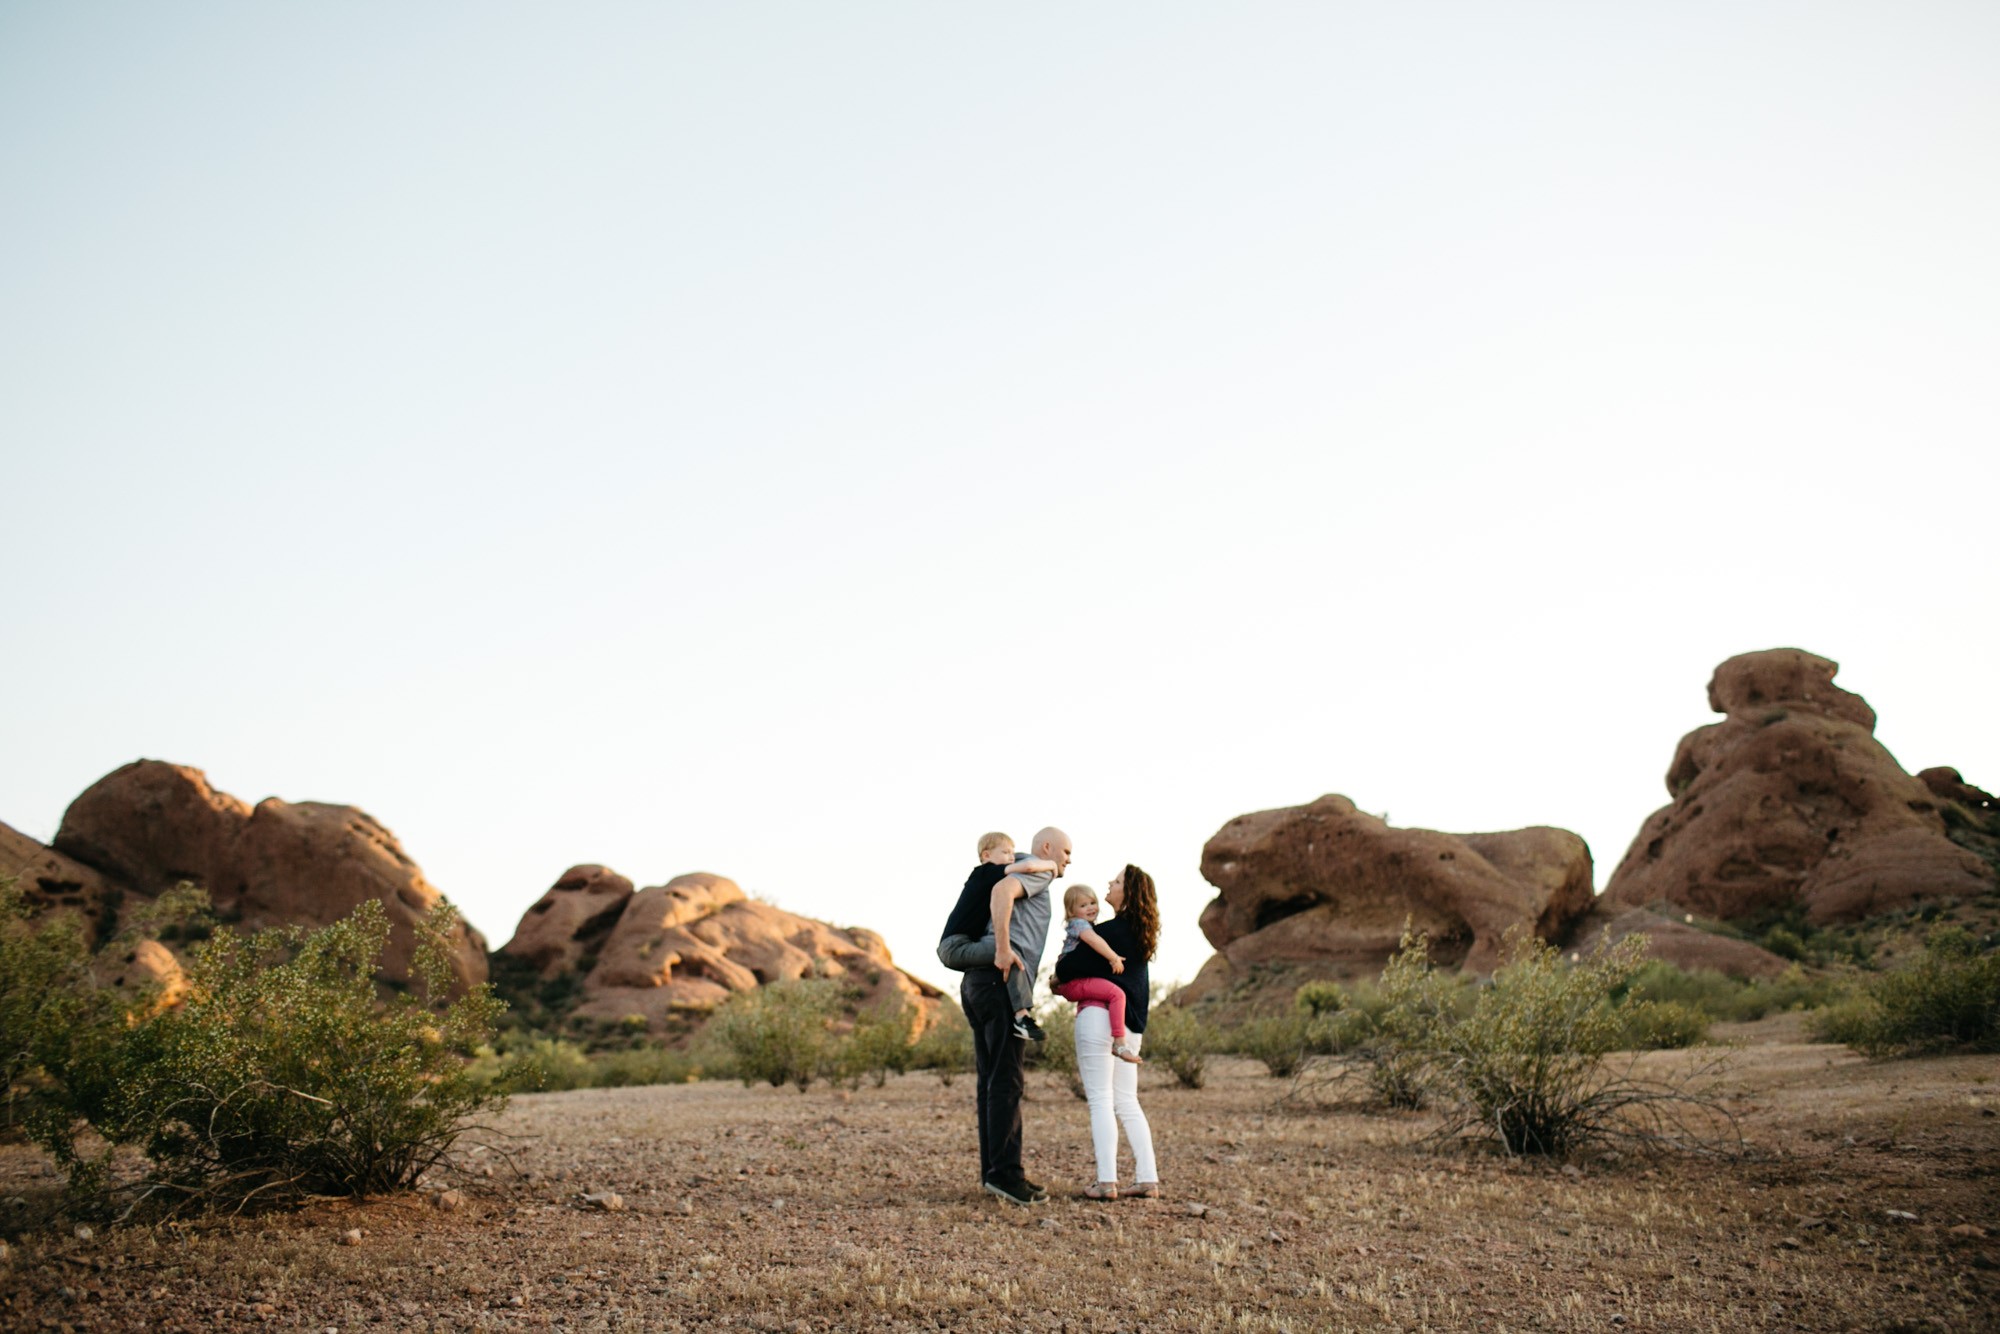 scottsdale-family-lifestyle-photographer-29.jpg